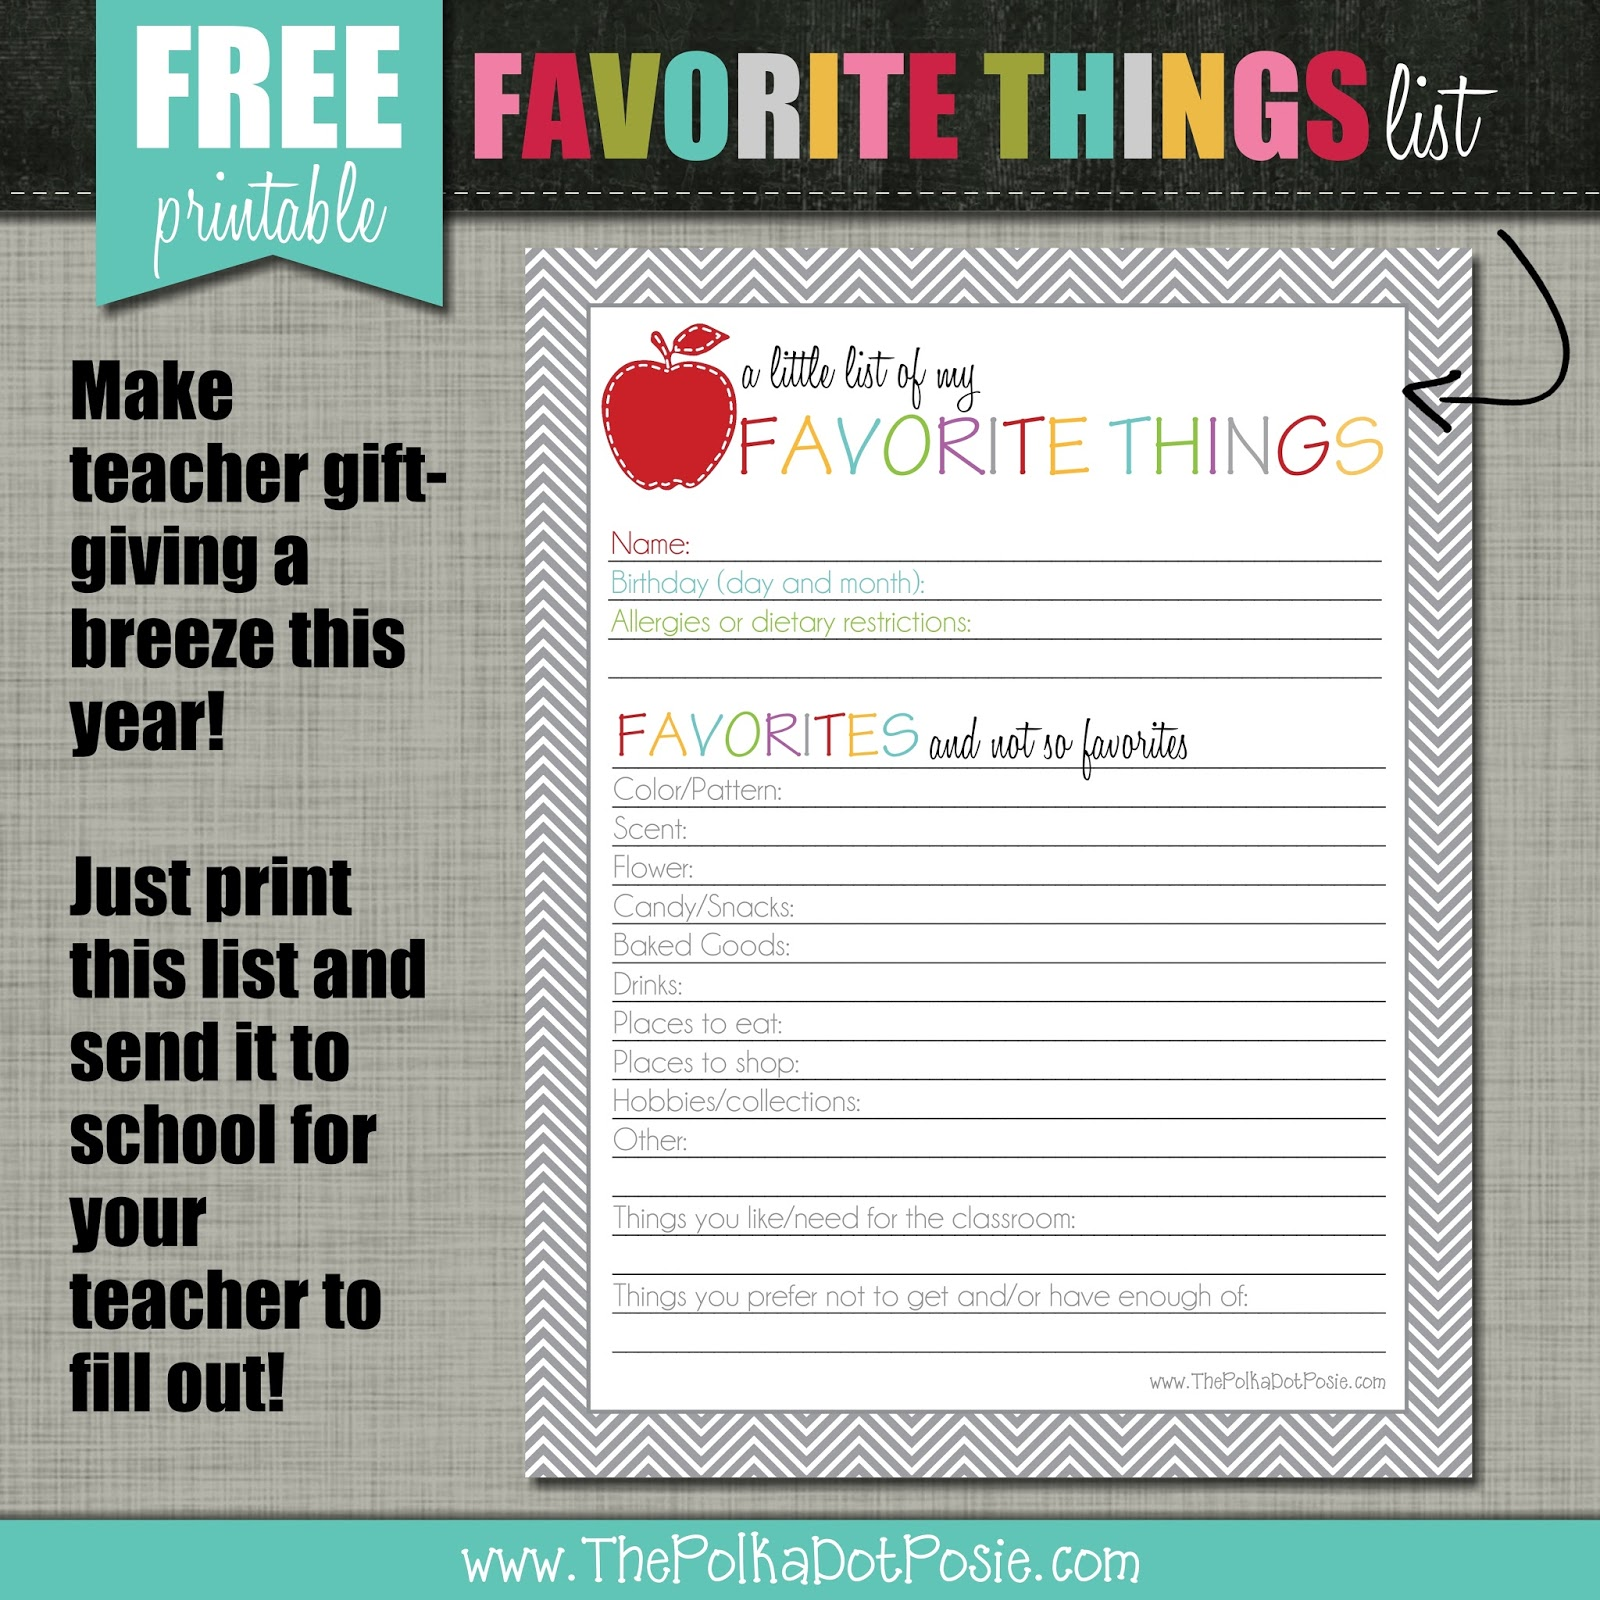 image regarding Teacher Favorite Things Printable named The Polka Dot Posie